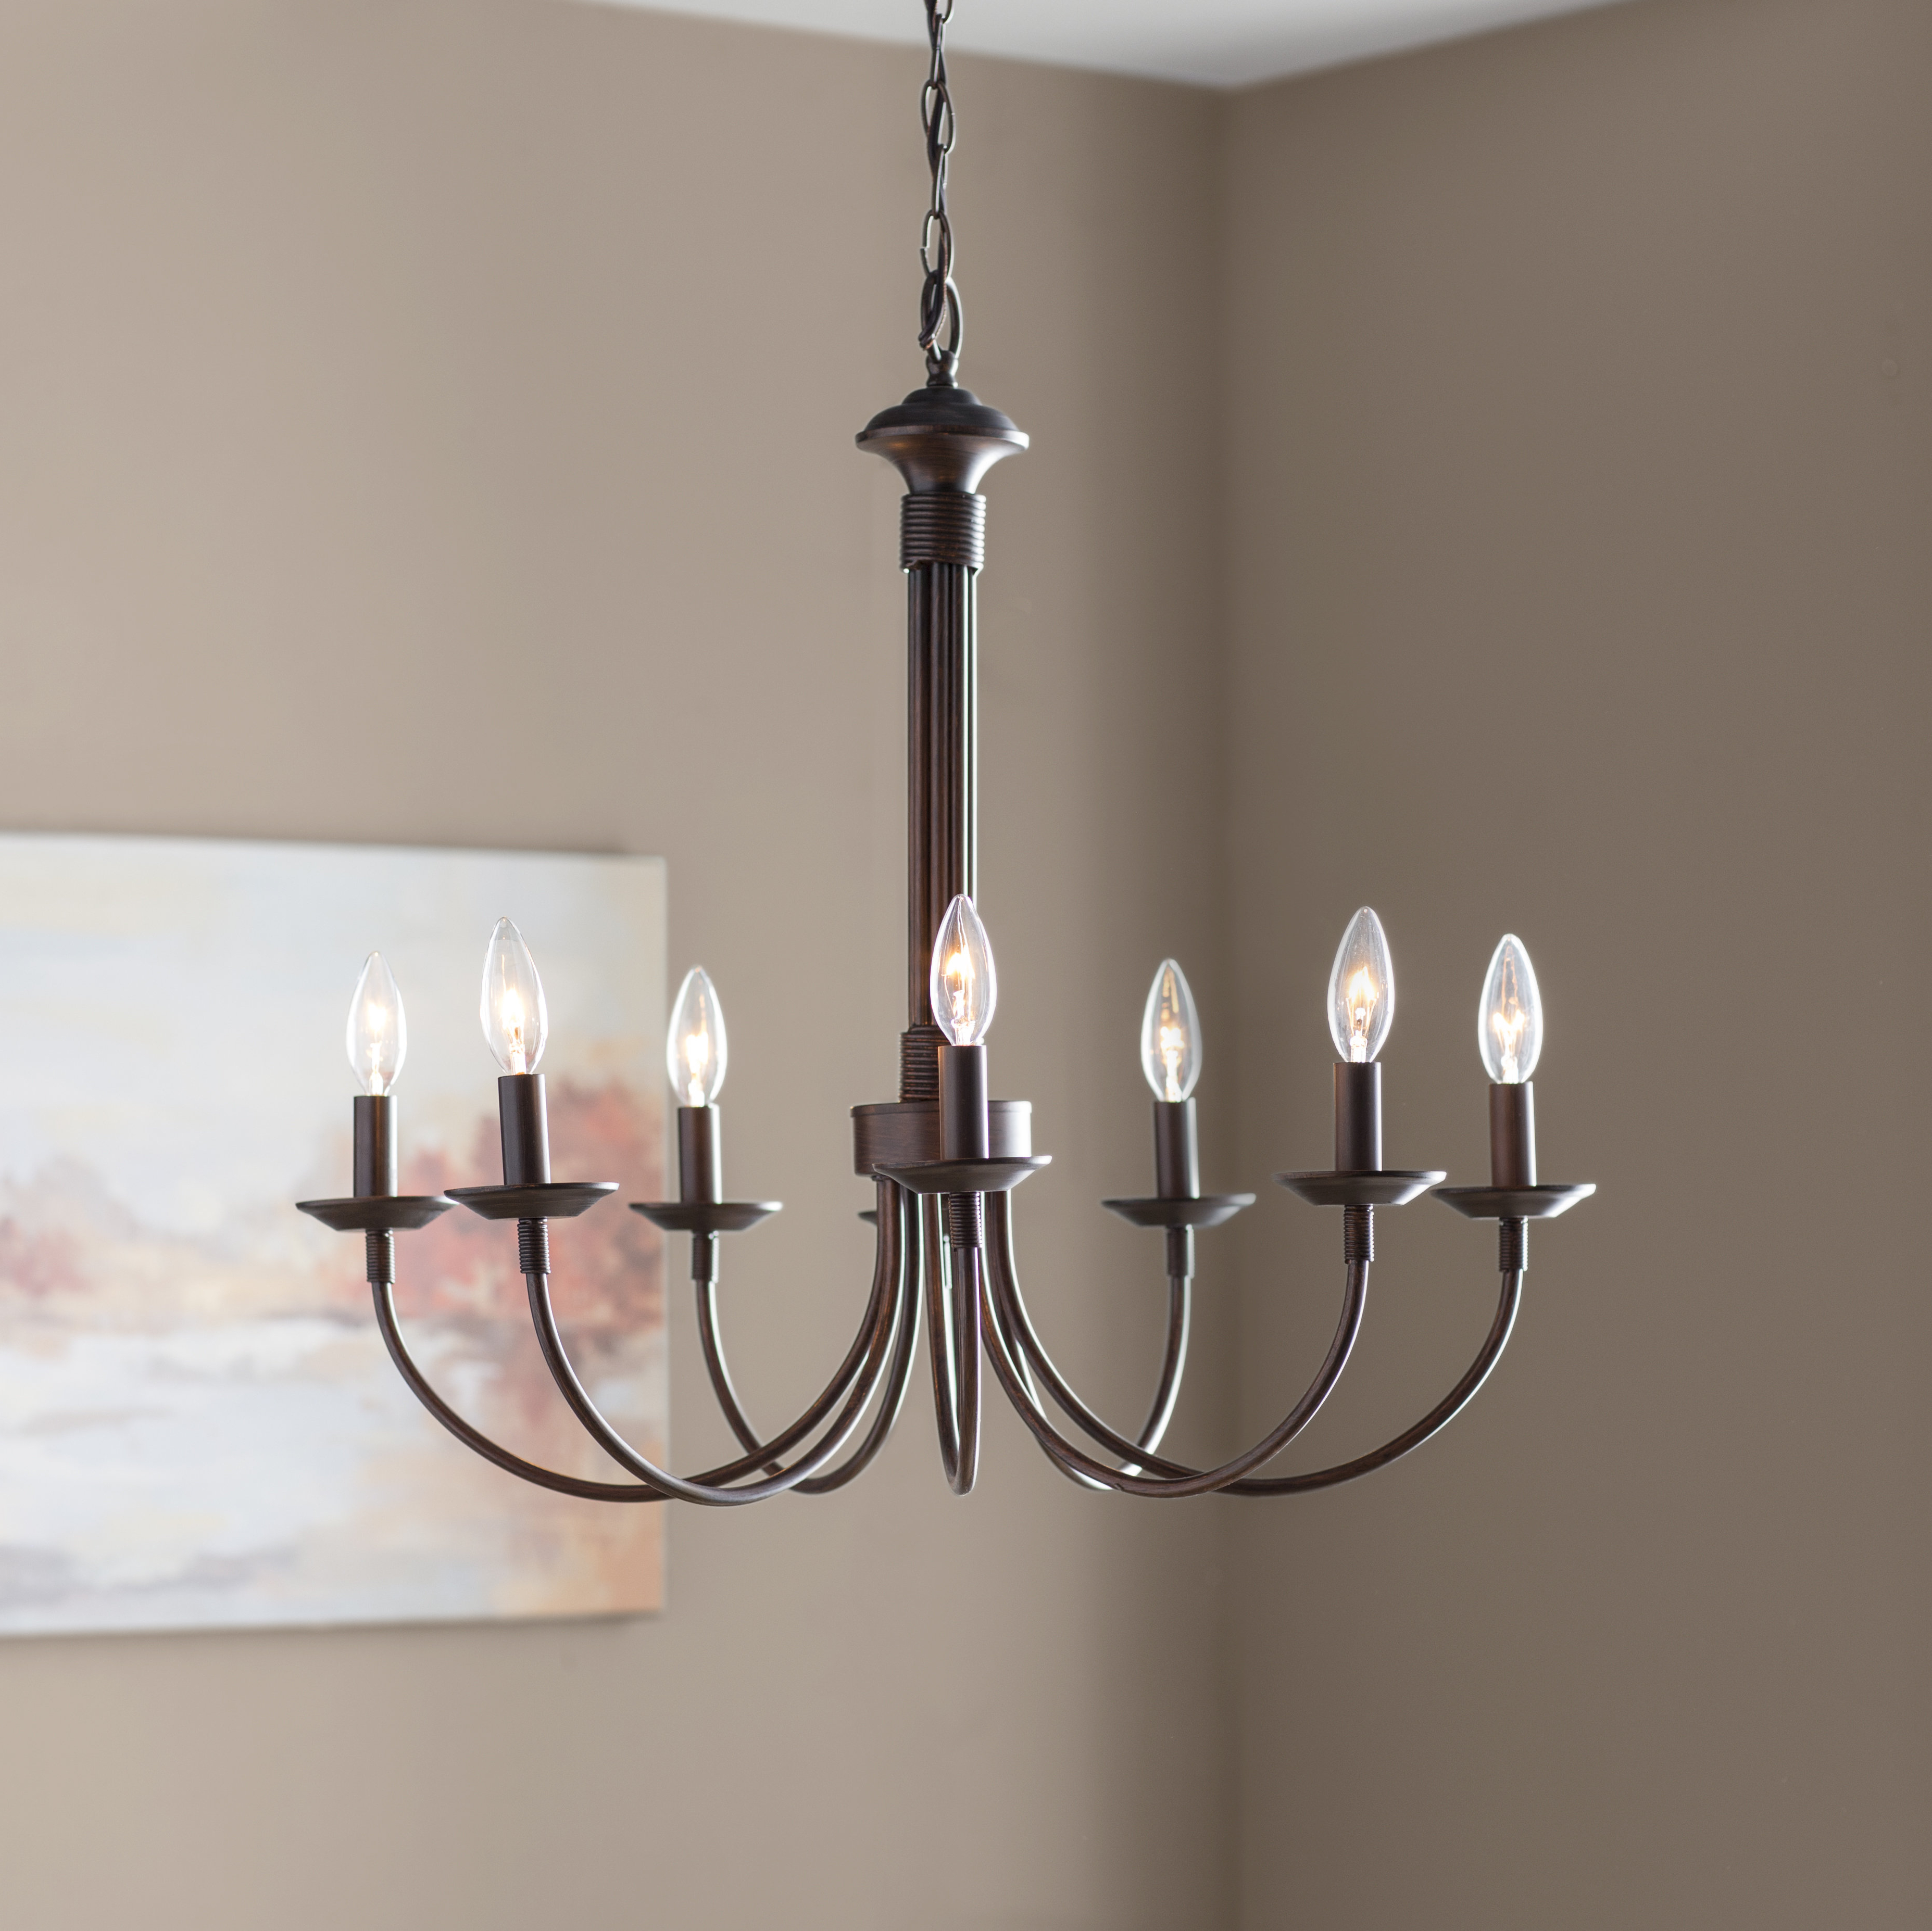 Shaylee 8 Light Candle Style Chandelier With Regard To Preferred Giverny 9 Light Candle Style Chandeliers (View 19 of 20)